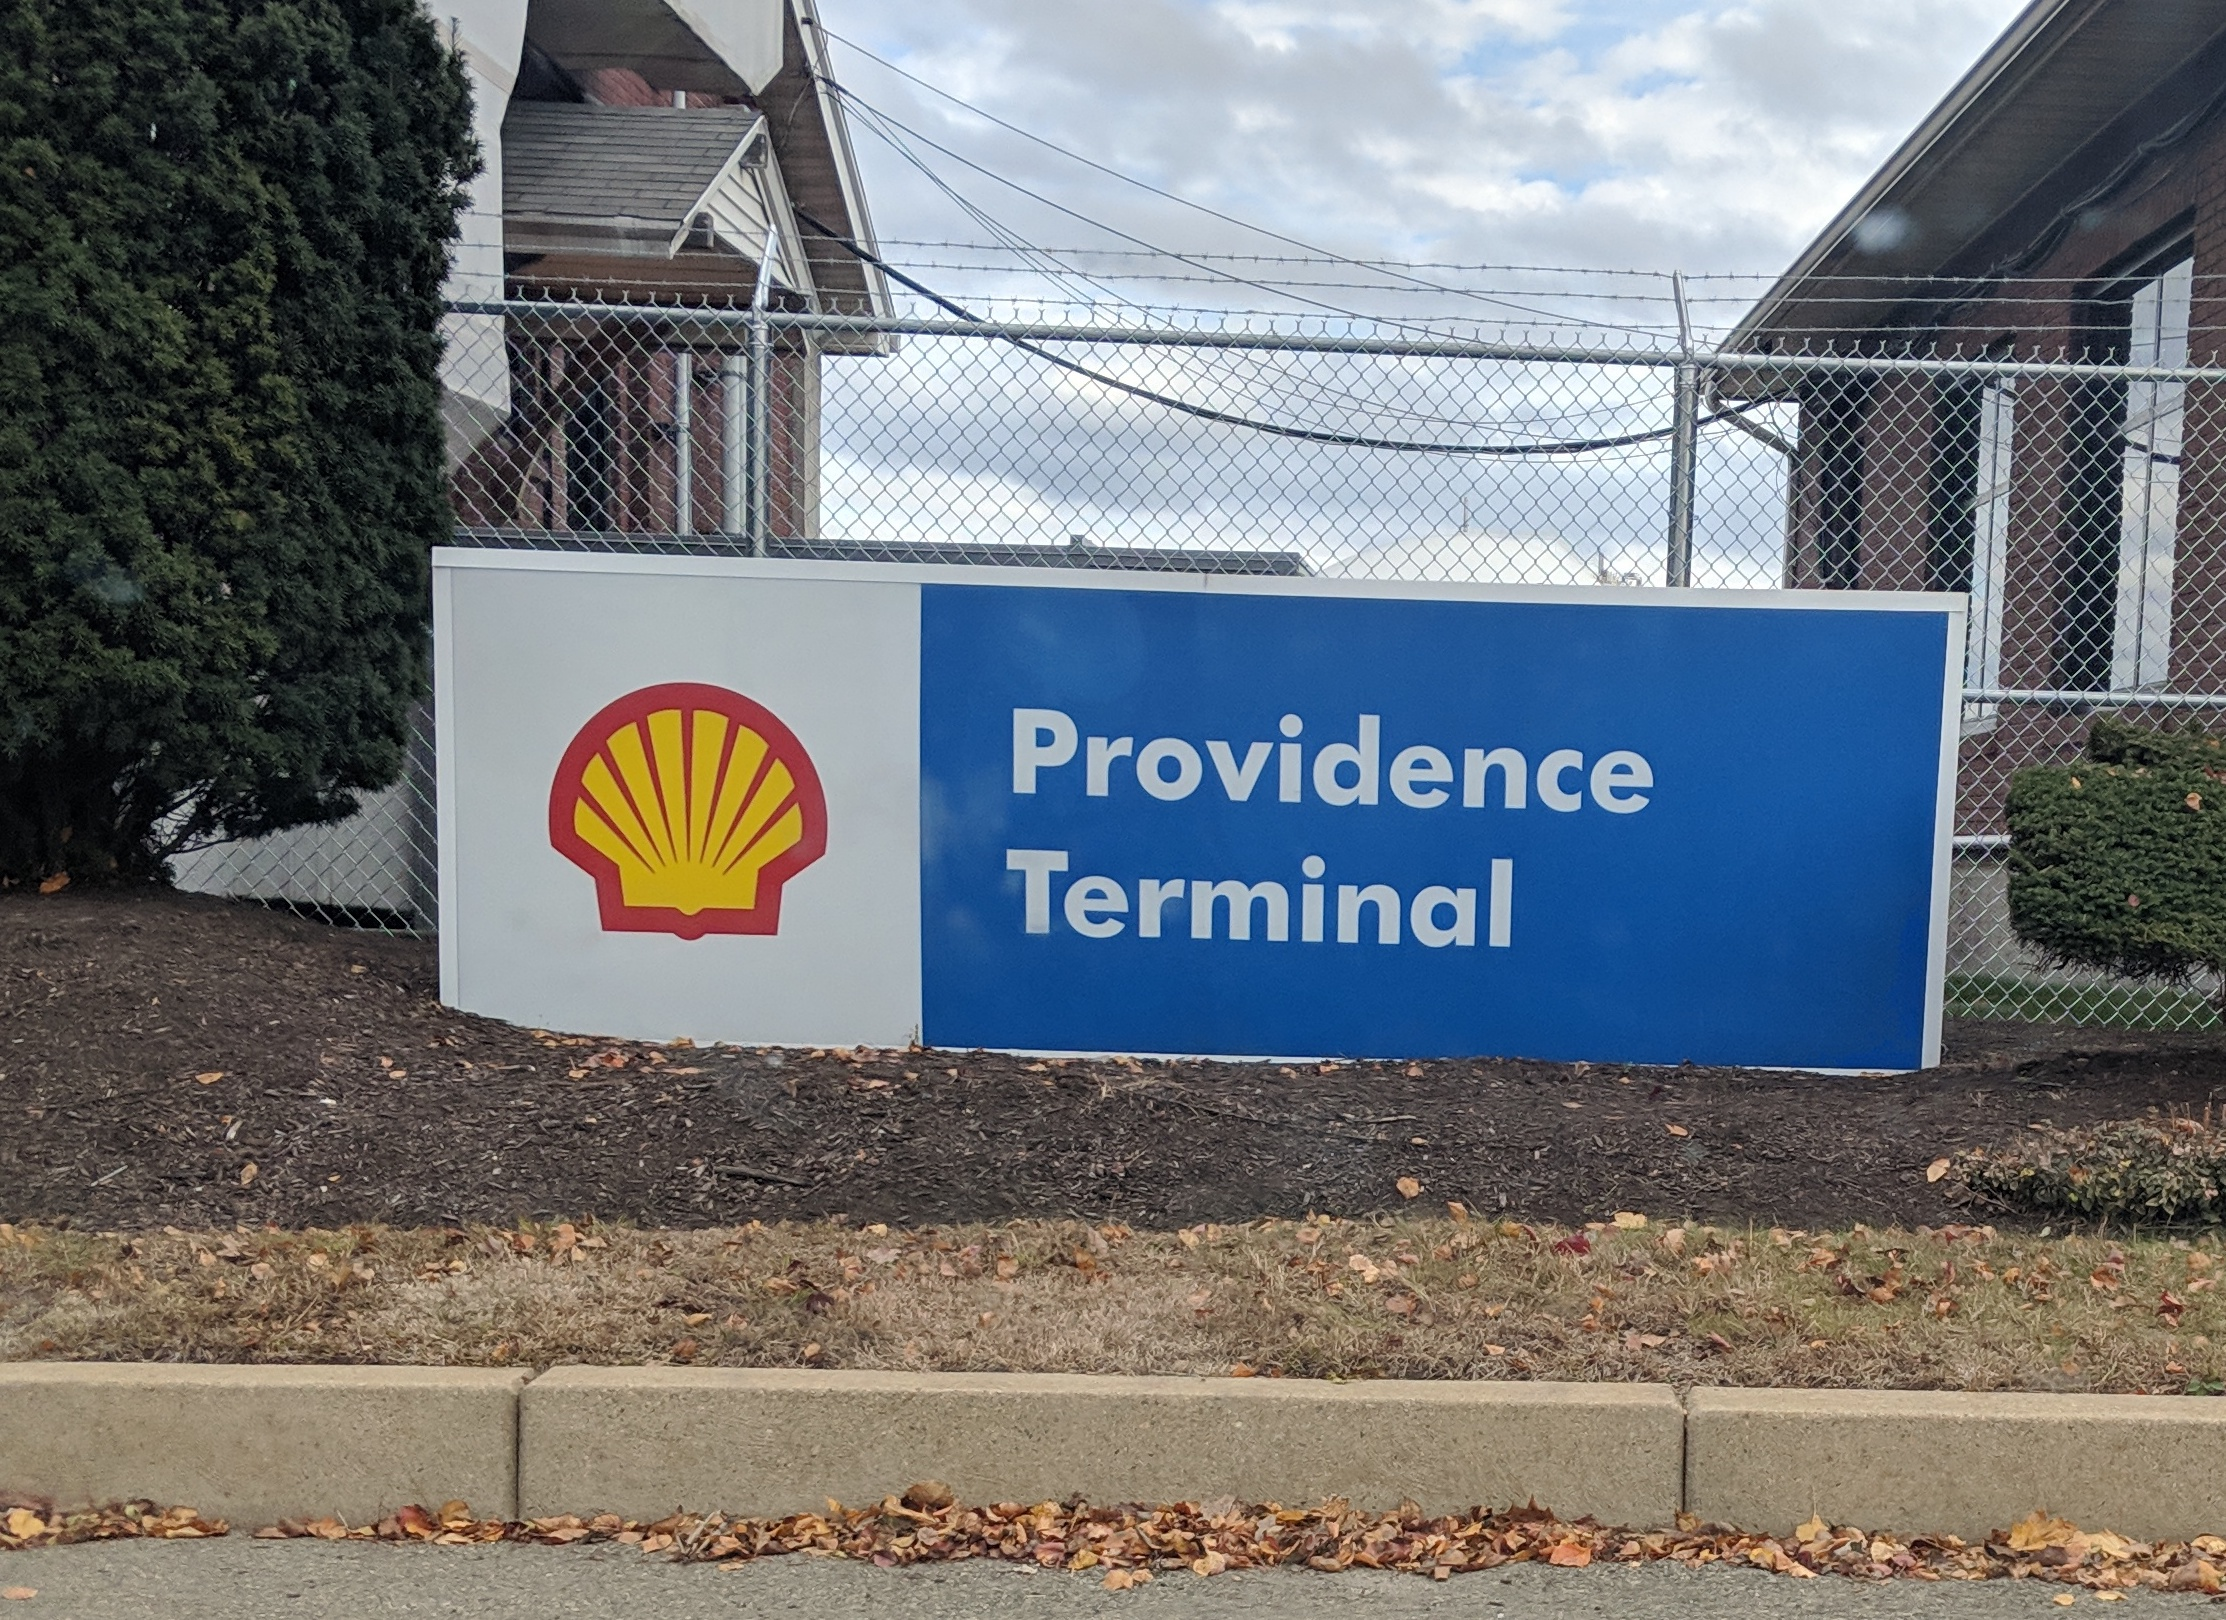 Royal Dutch Shell is the largest oil company in the world. (Tim Faulkner/ecoRI News)